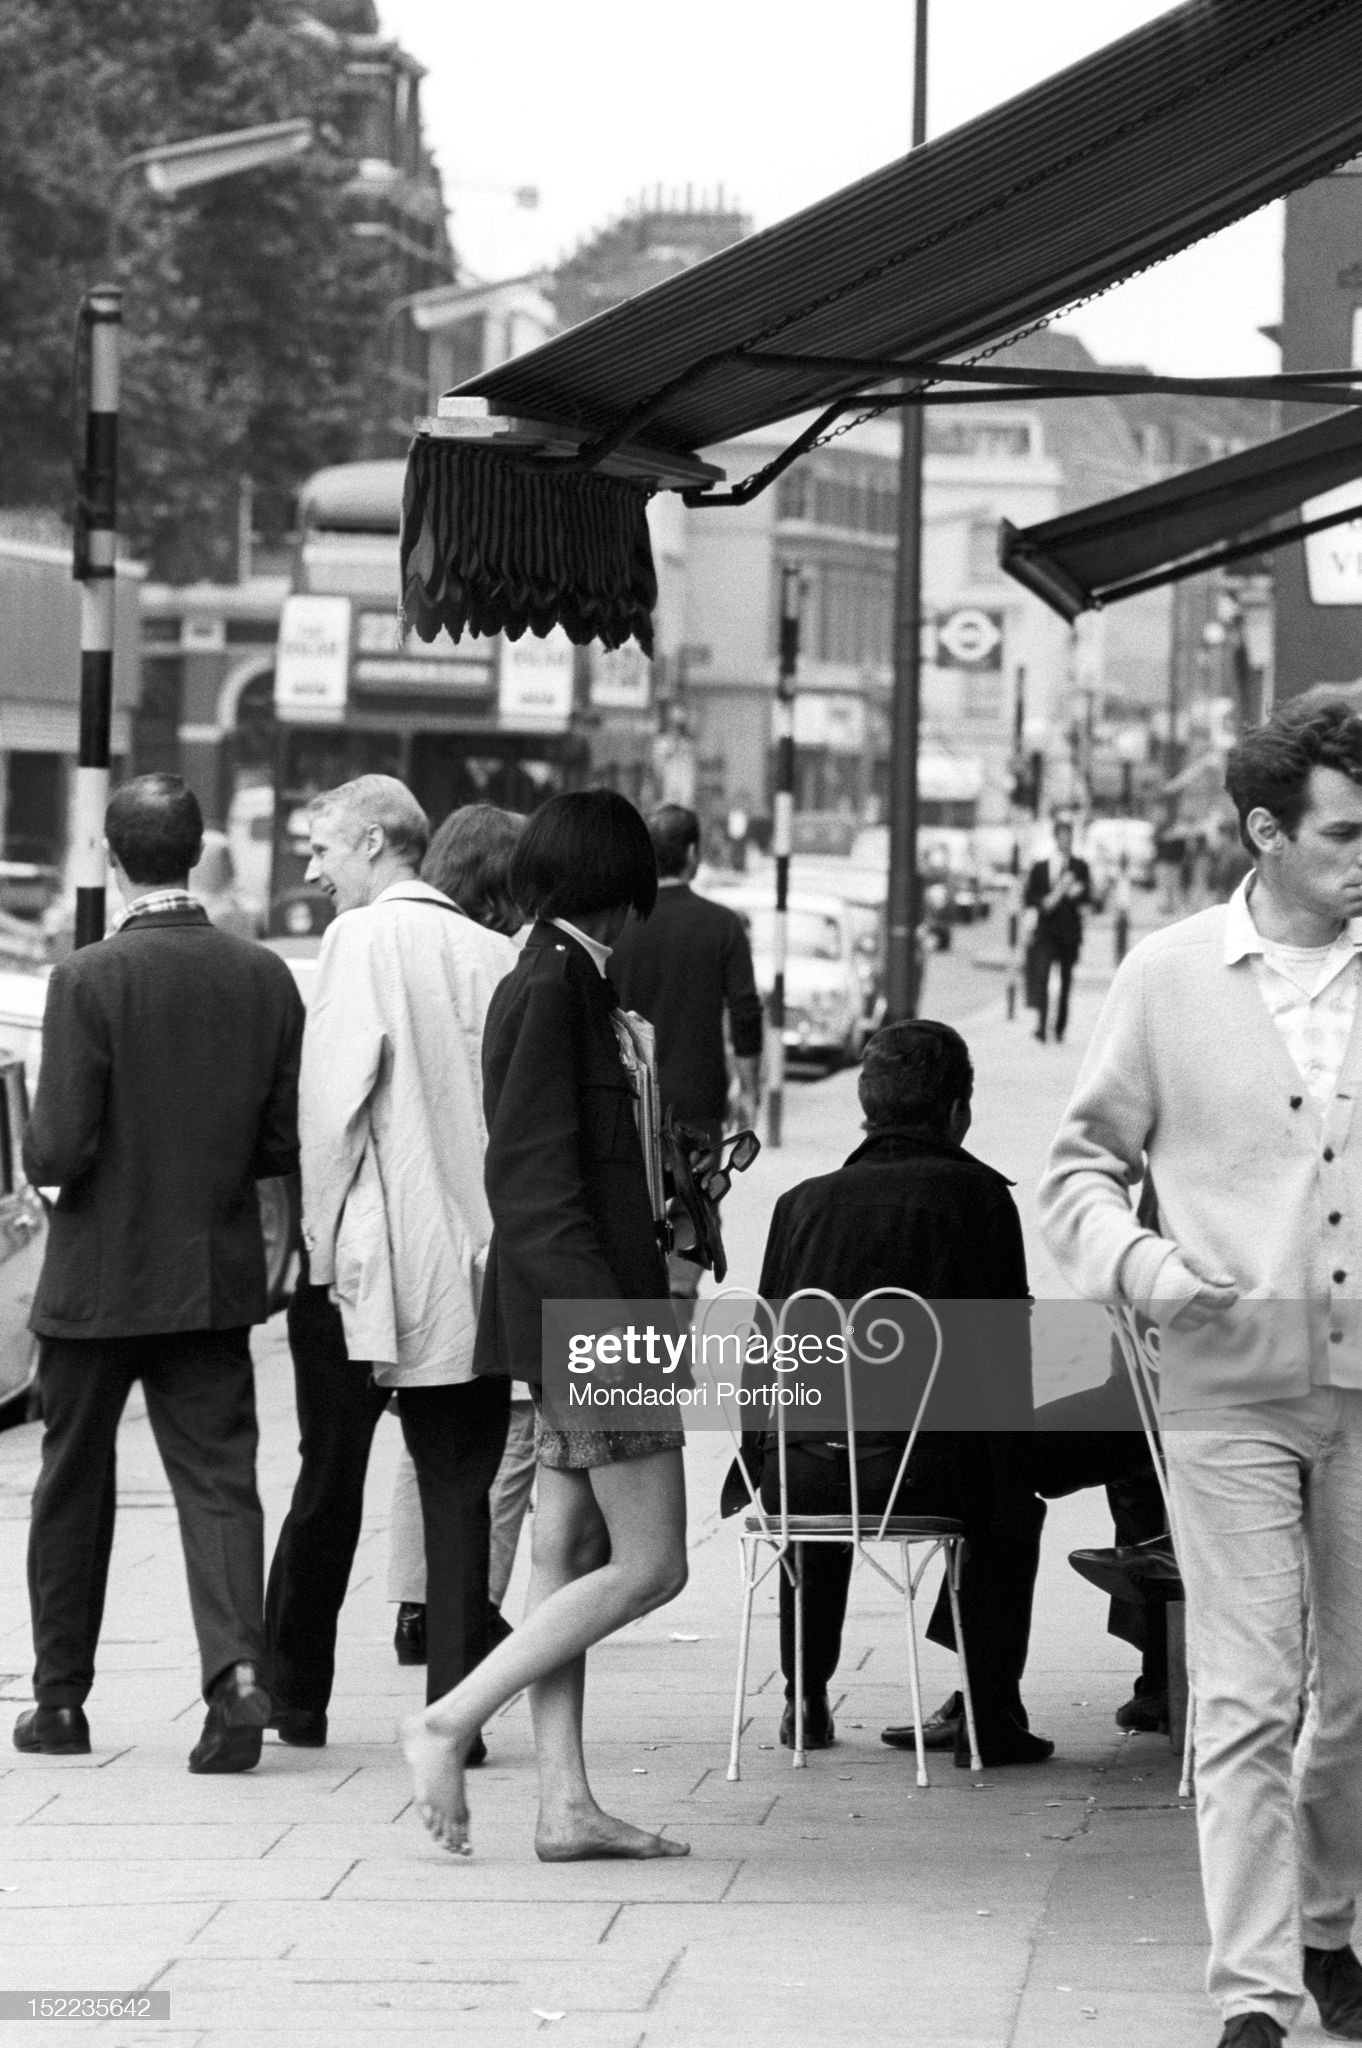 https://media.gettyimages.com/photos/british-girl-wearing-a-miniskirt-walking-barefoot-in-the-streets-of-picture-id152235642?s=2048x2048